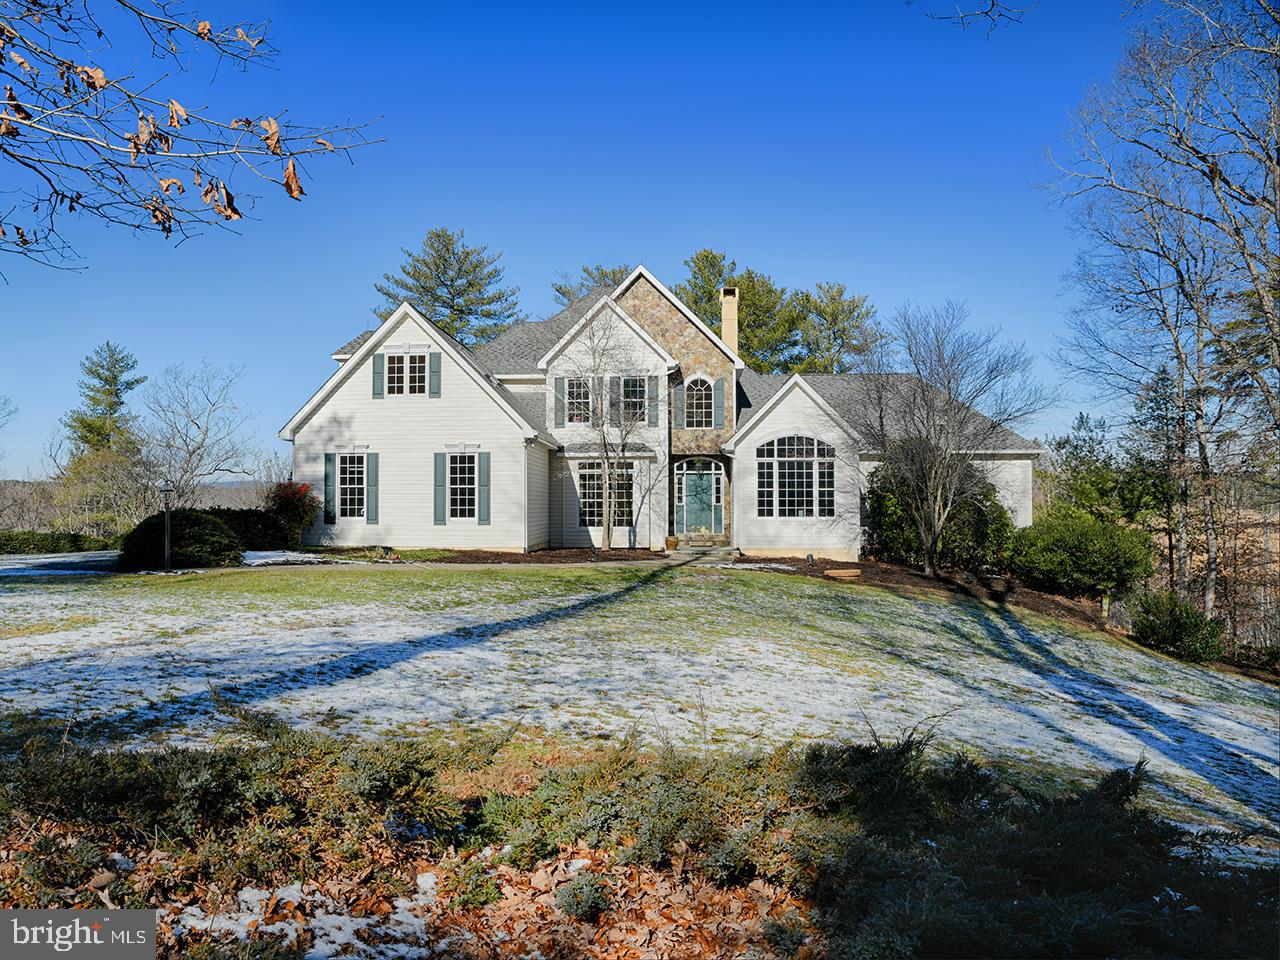 142 RURITAN RIDGE LANE, SCOTTSVILLE, VA 24590